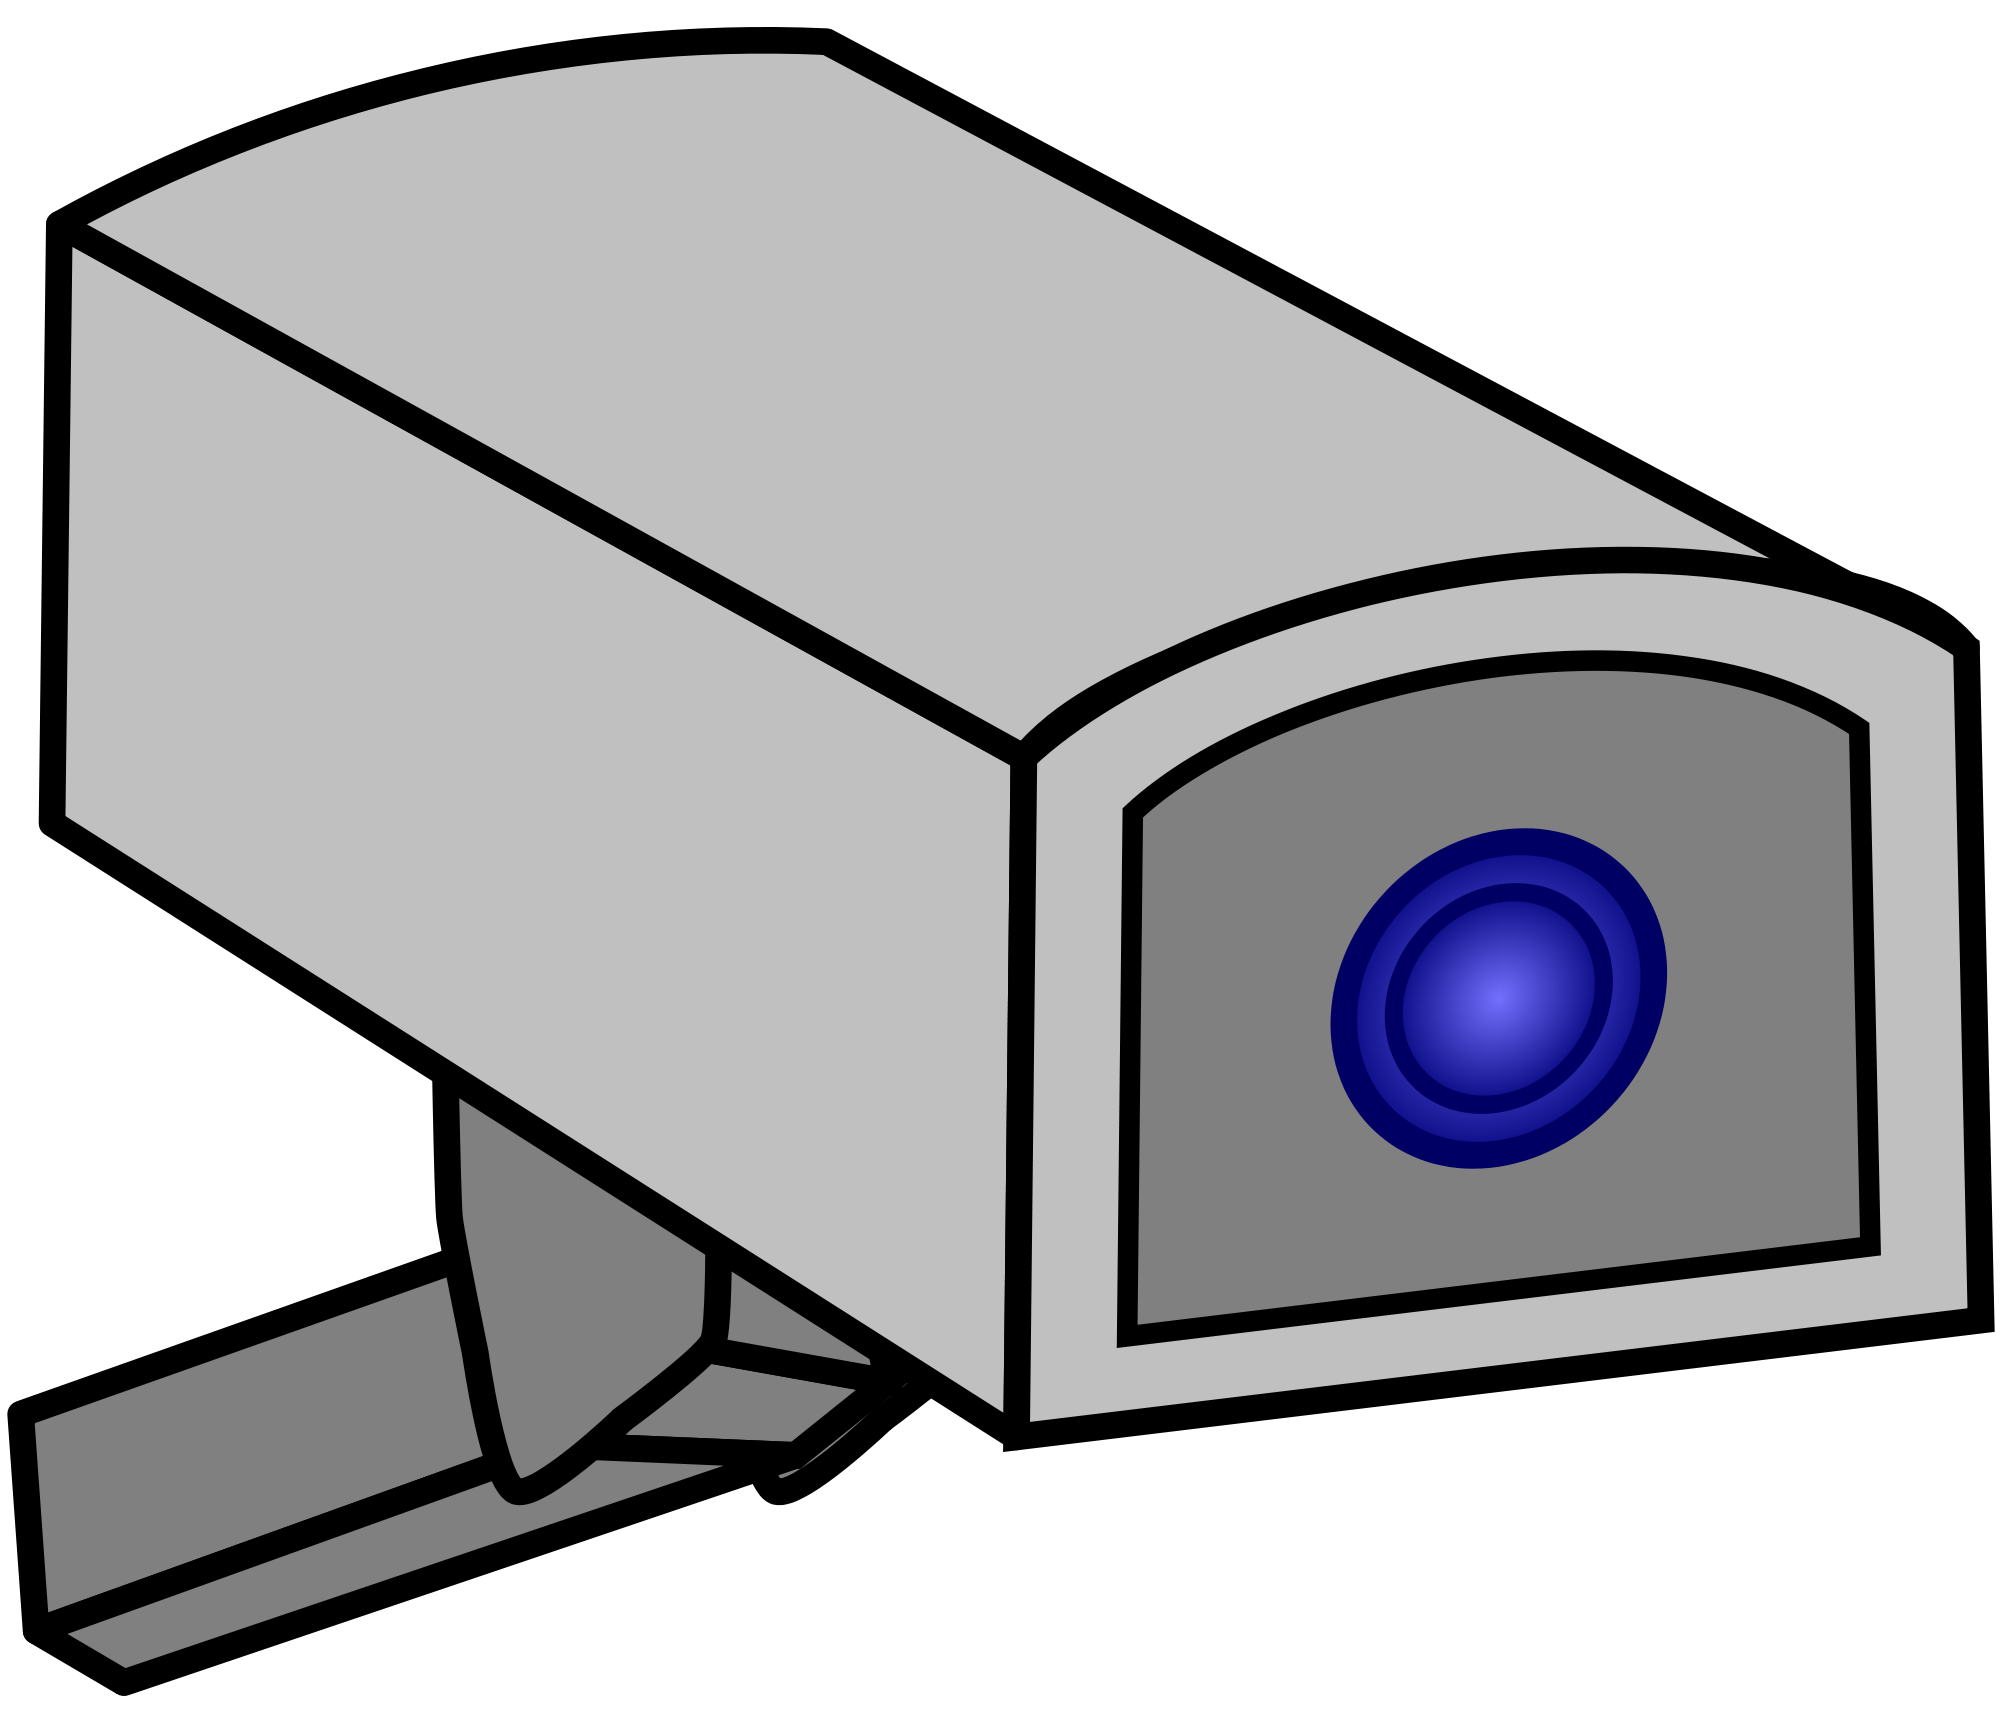 Drawing file. Of a cctv camera